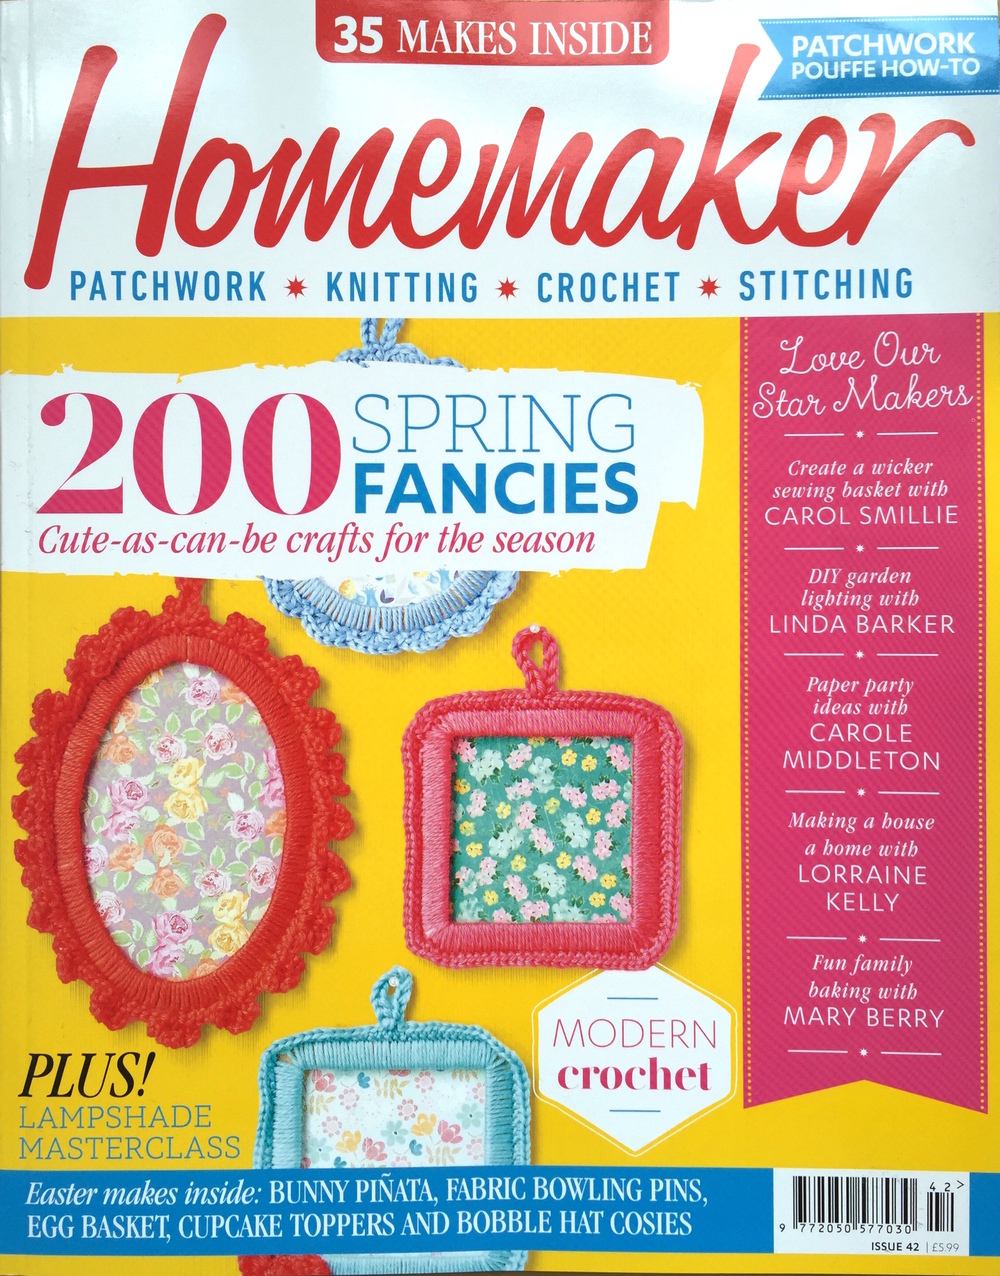 March 2016 - Homemaker Magazine. Issue 42. Stitch a Bunny Bowling Set DIY Project.